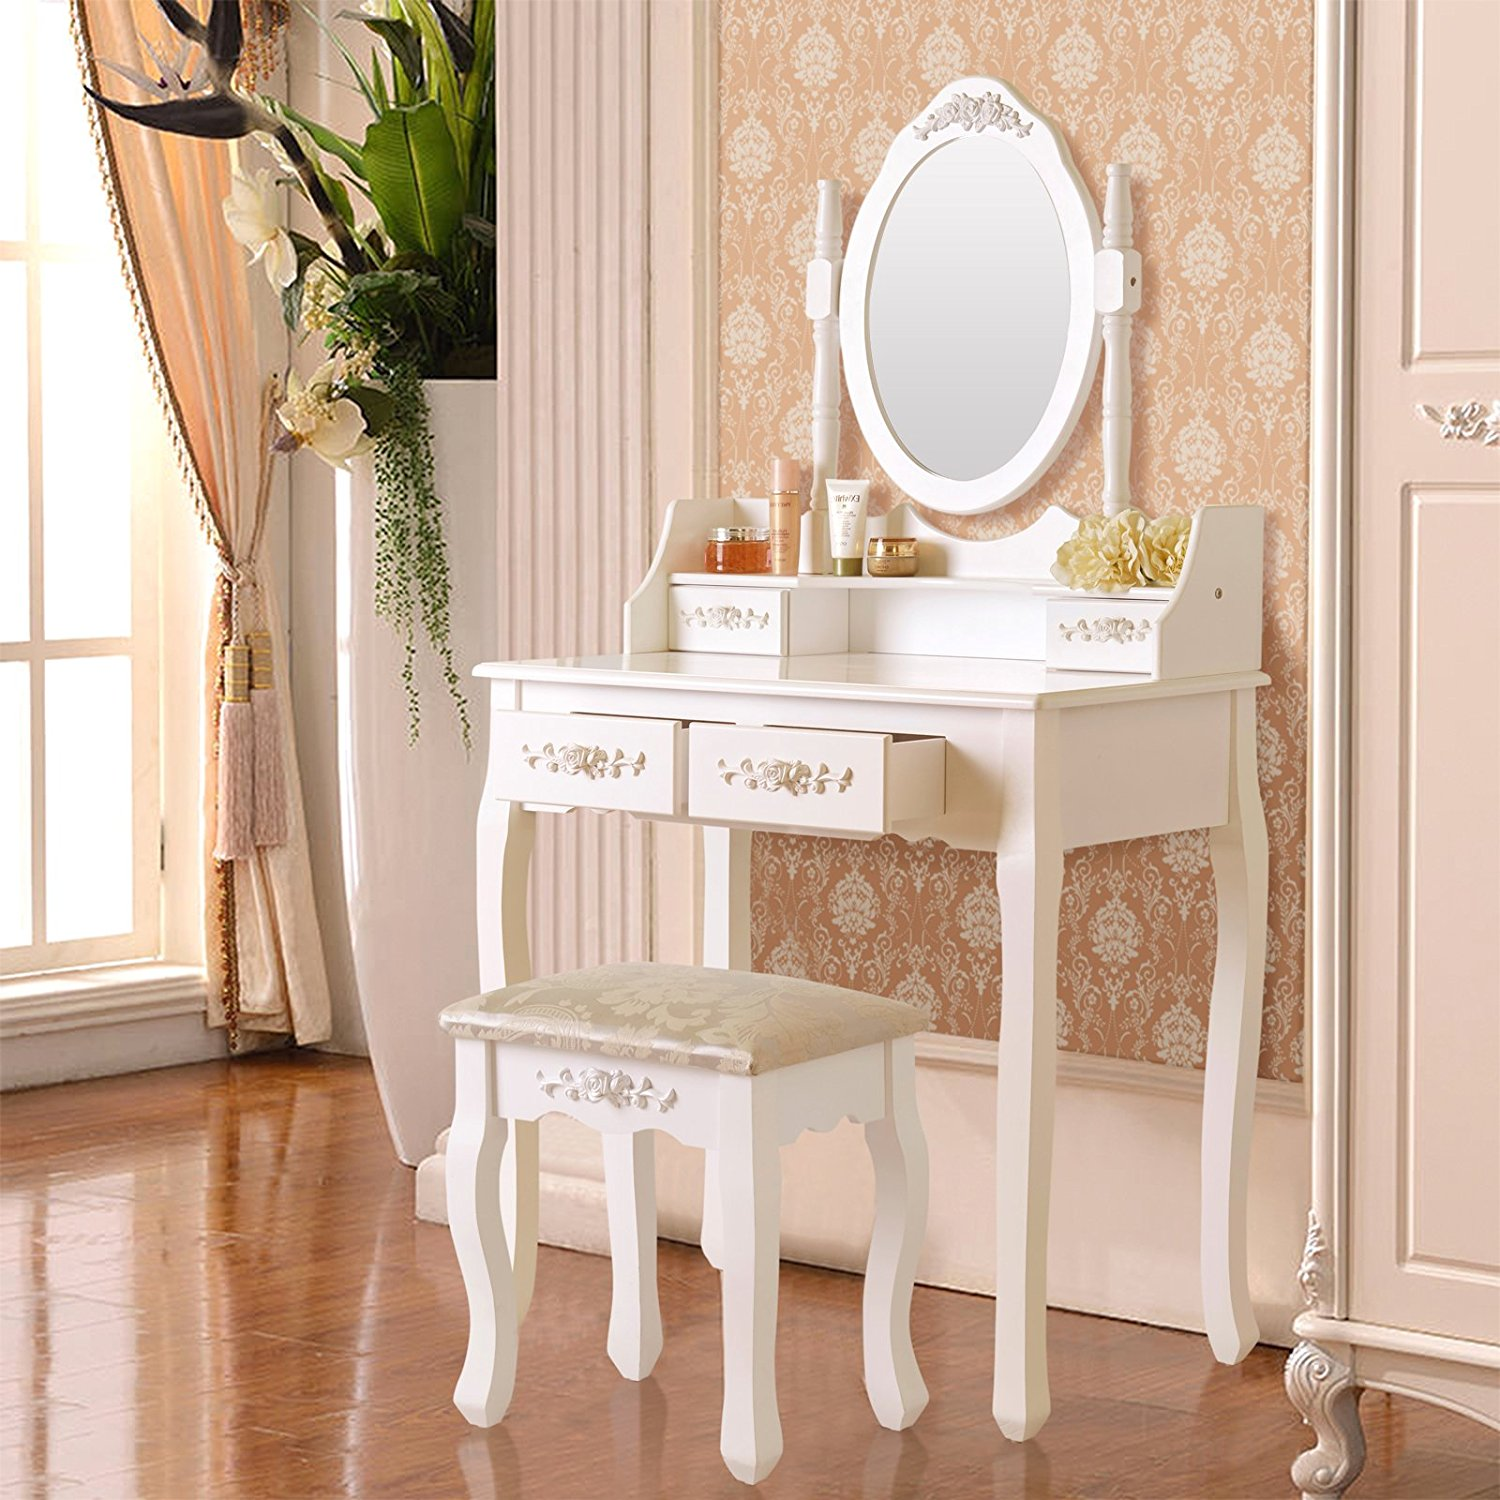 dressing finish cfs online vanity table diego concrete buy flip uk mirror